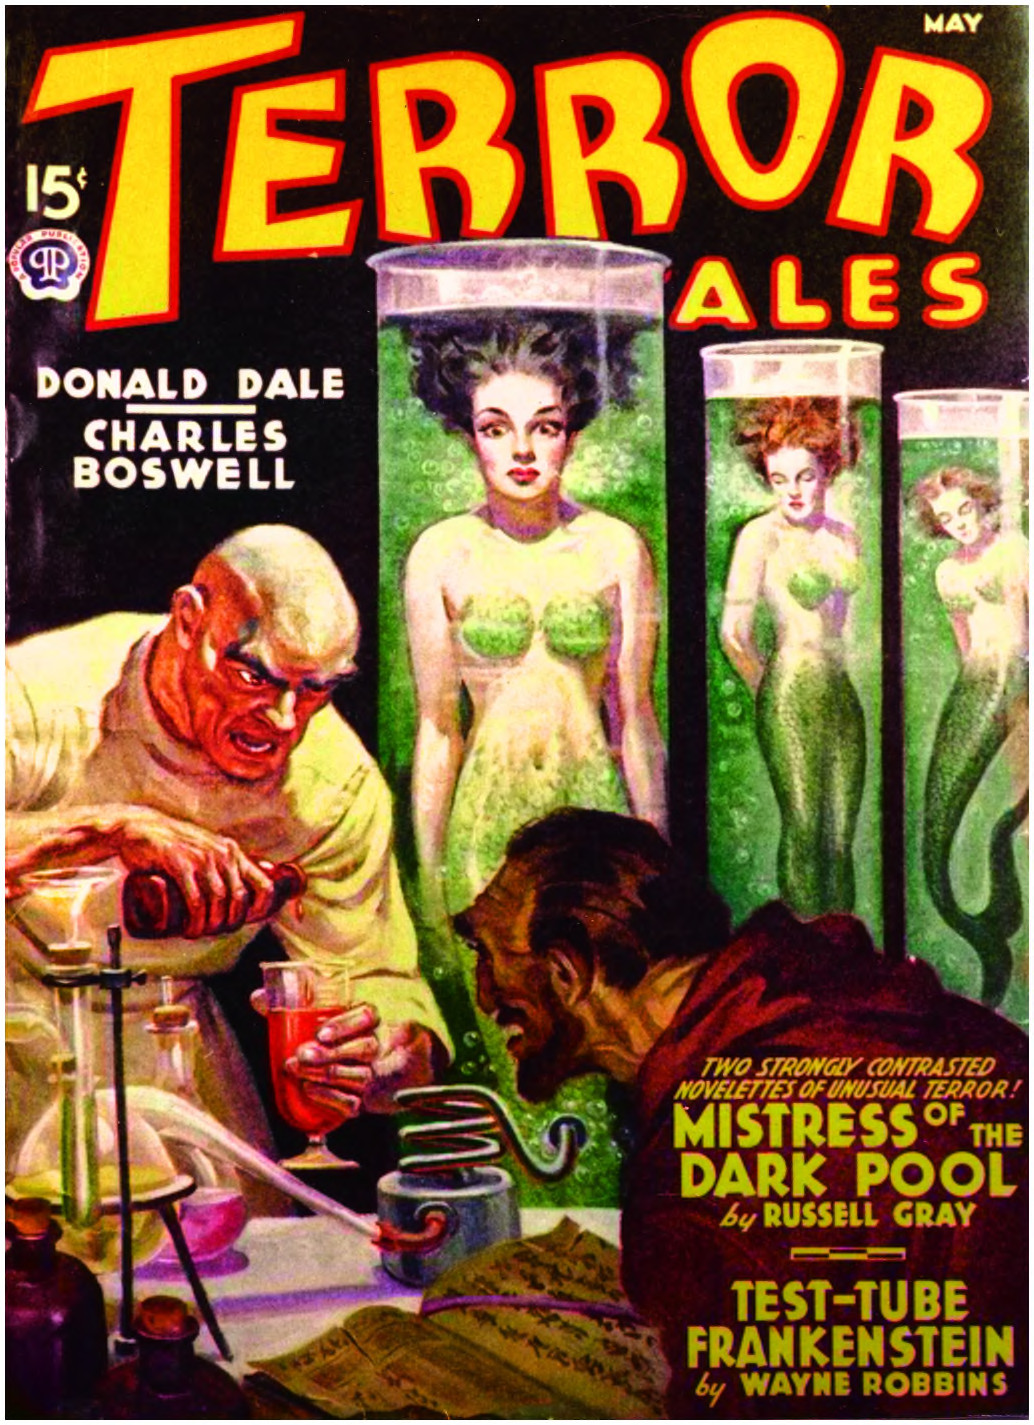 Women in tubes turning into mermaids under the direction of a mad scientist.  Cover of May 1940 Terror Tales by Rafael DeSoto.